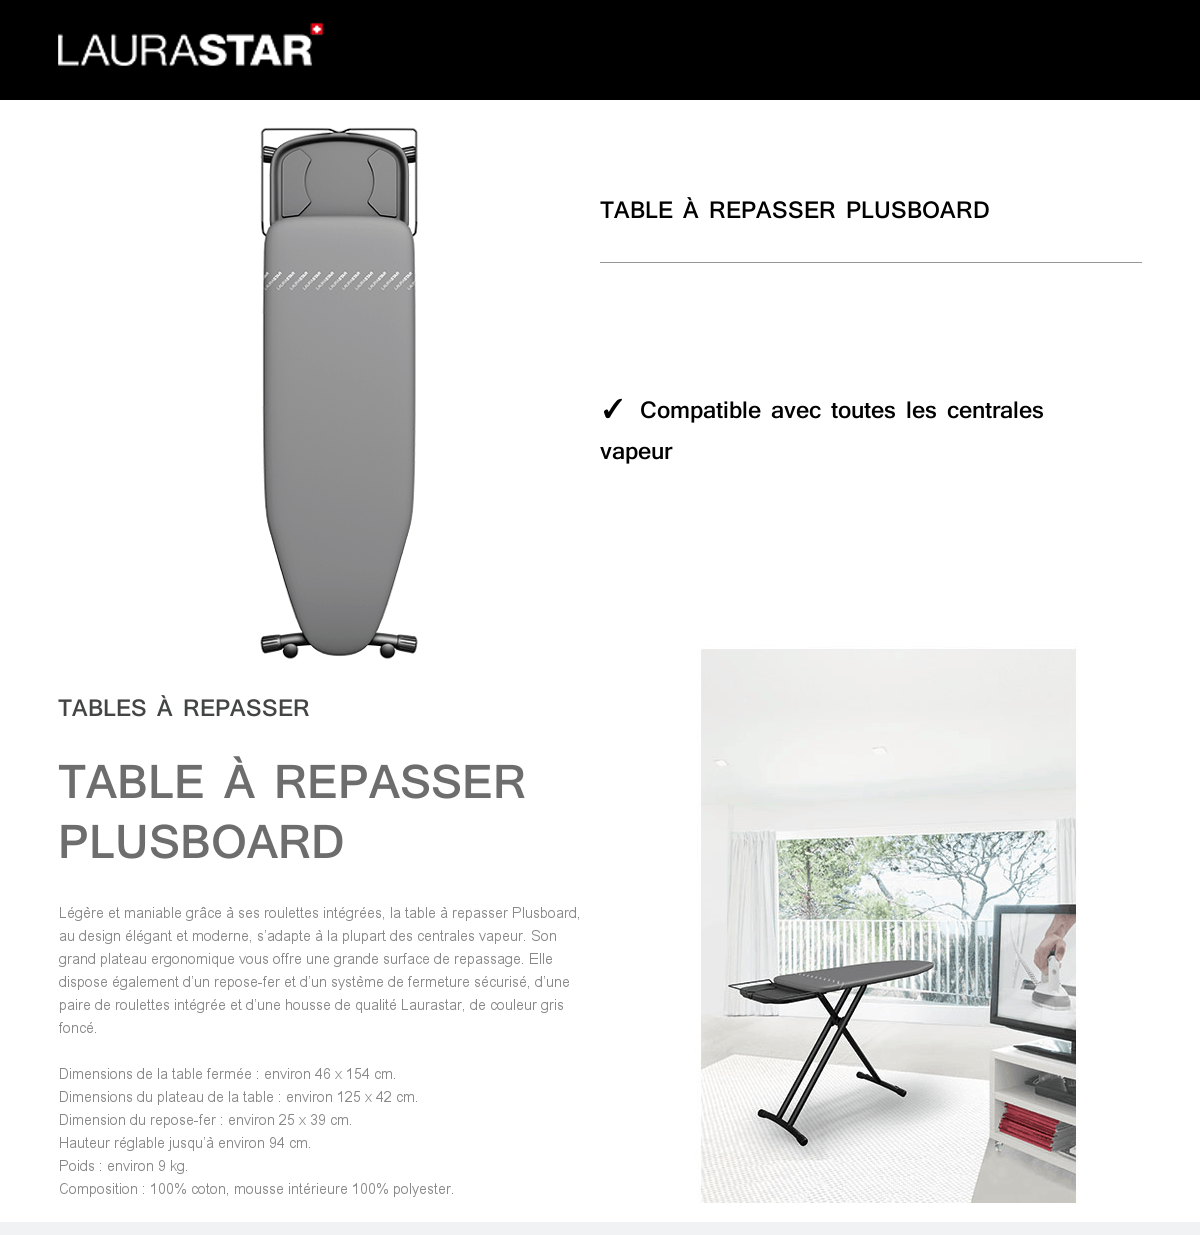 Table Repassage Centrale Vapeur Laurastar Table à Repasser Plusboard Gris Achat Vente Table